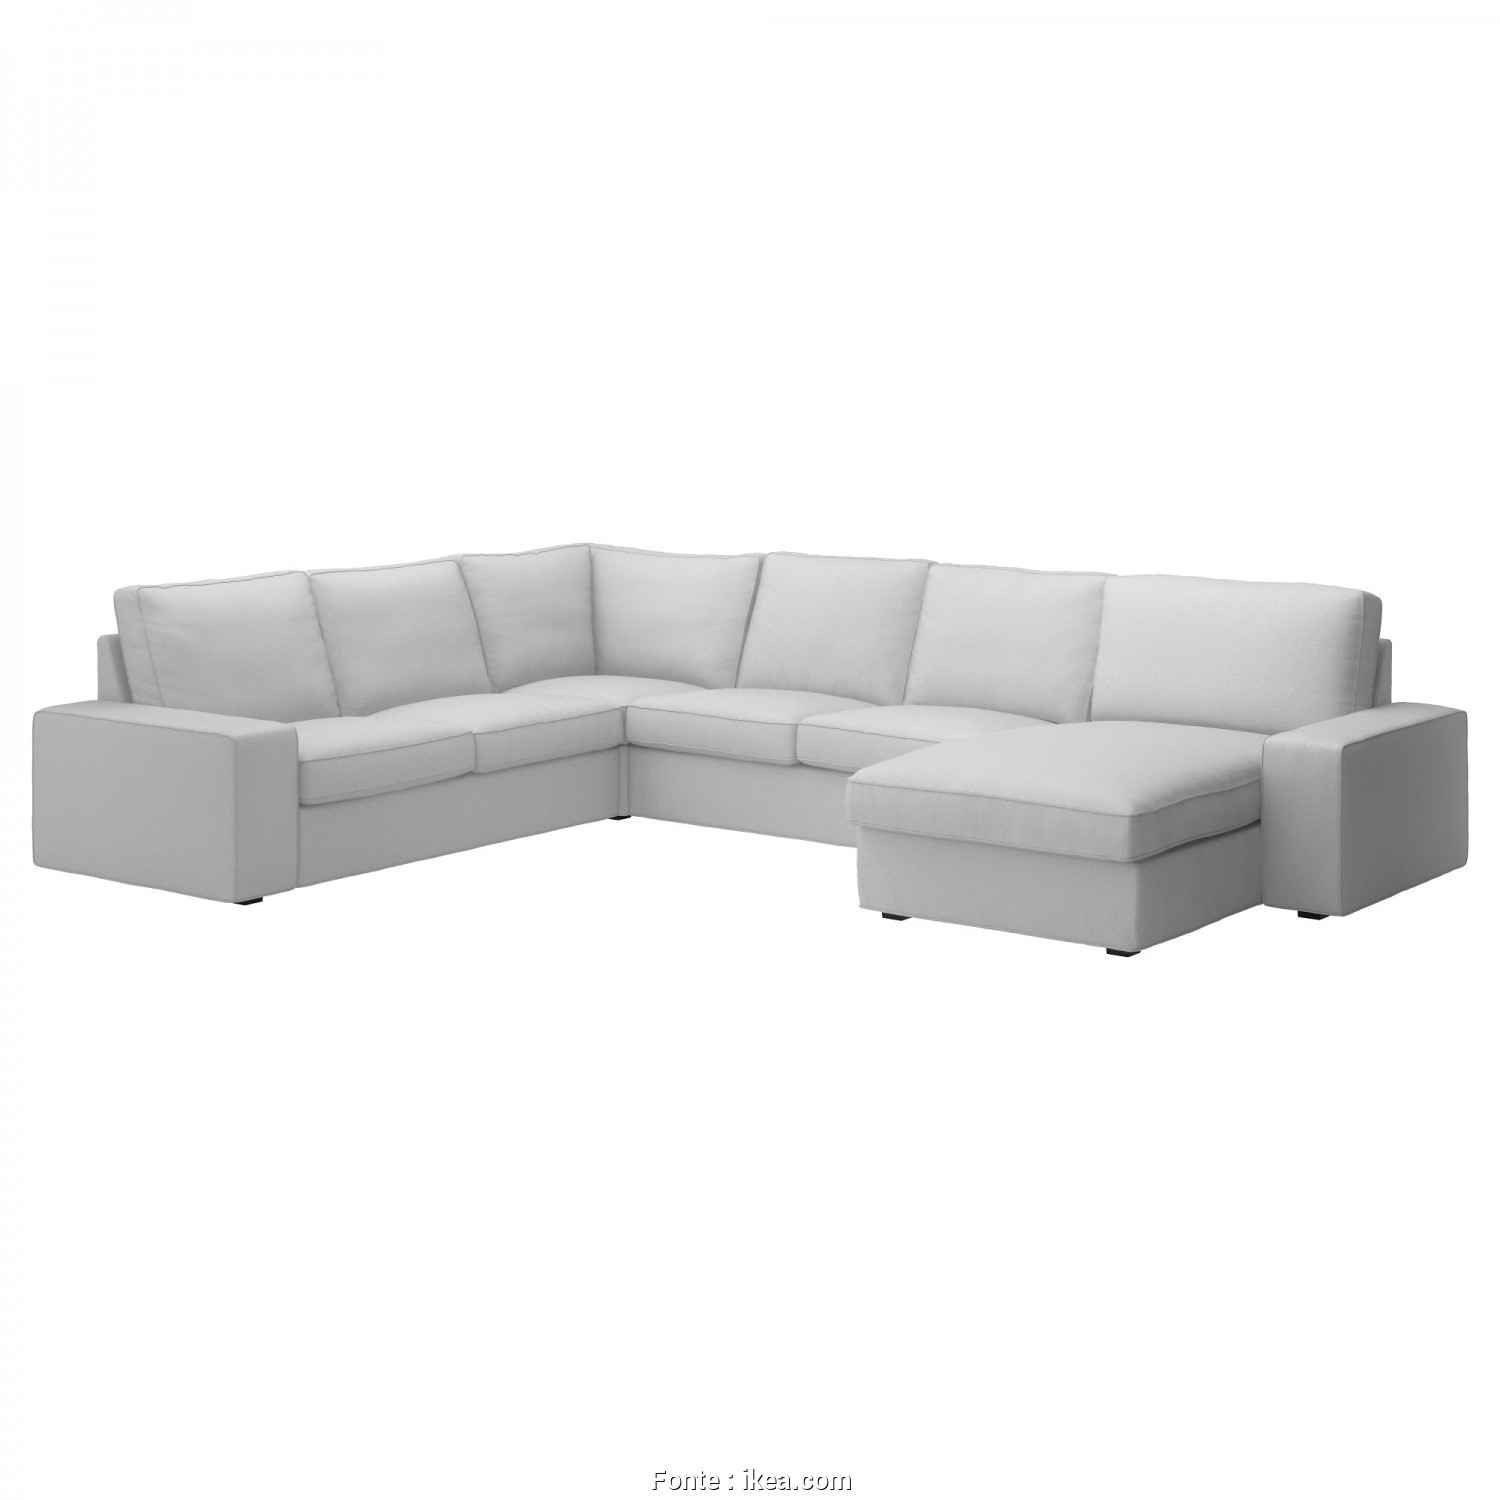 Ikea Divano Memory, Bello KIVIK Corner Sofa, 5-Seat, Hillared With Chaise Longue, Hillared Dark Blue